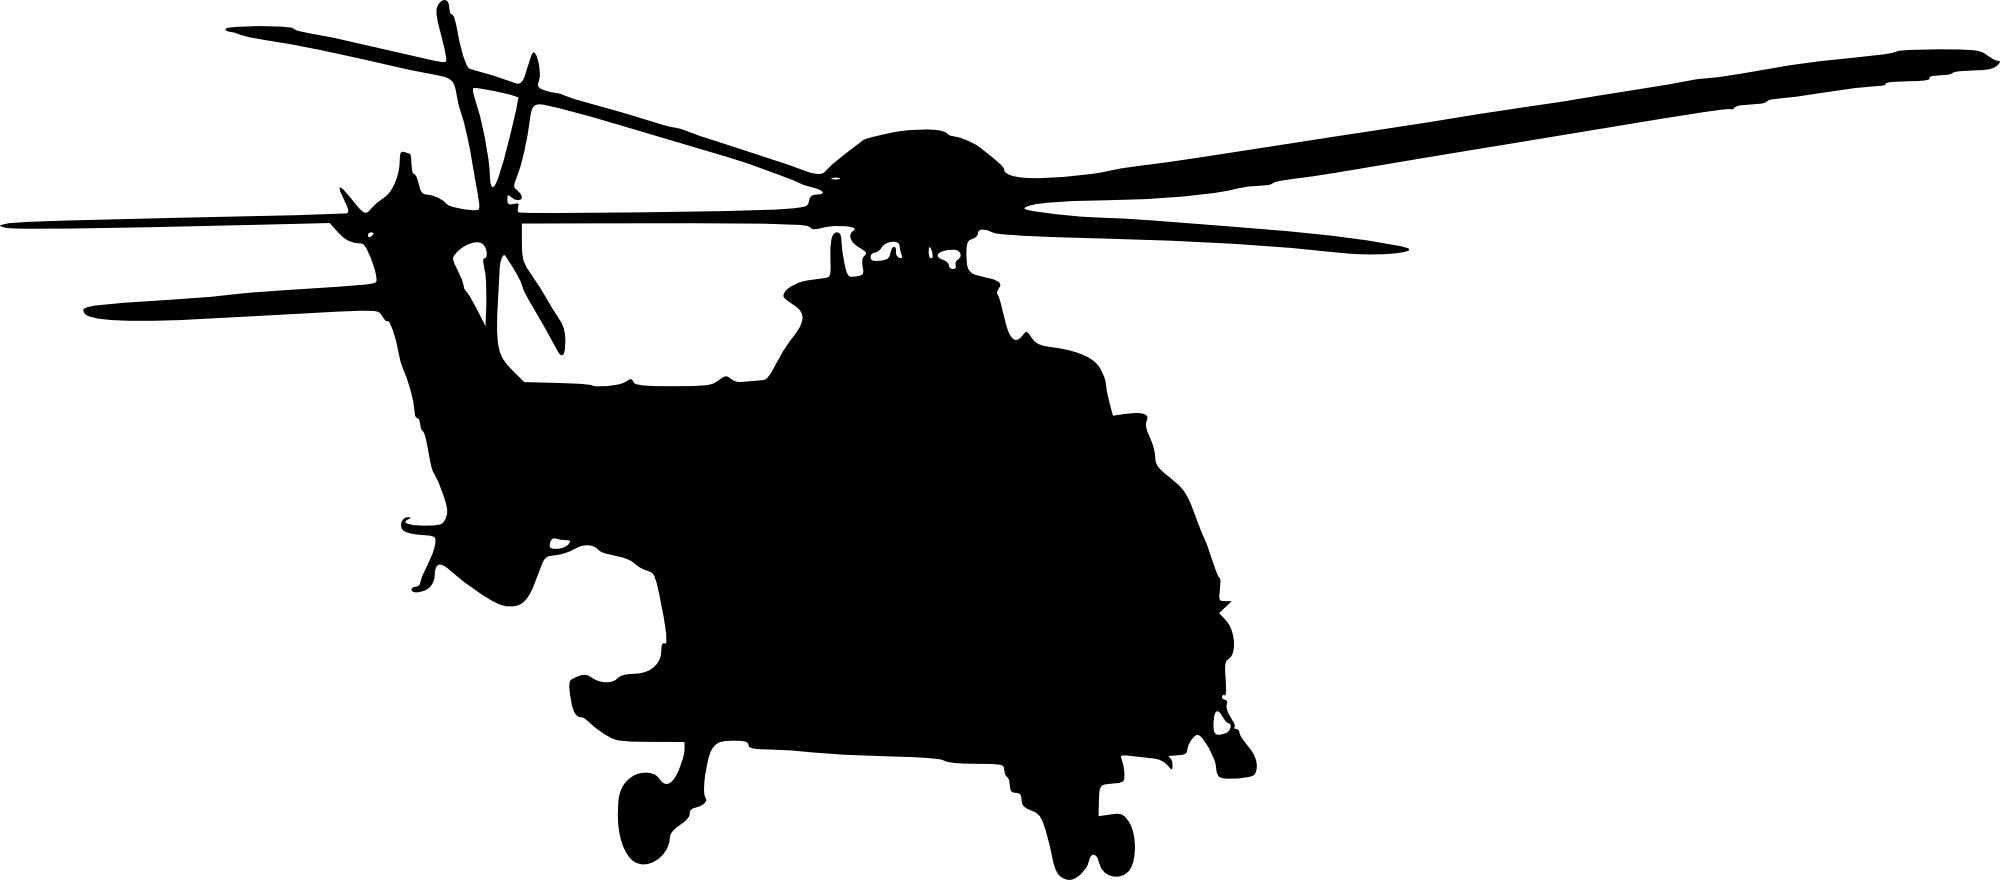 Helicopter clipart police helicopter. Chinook silhouette at getdrawings